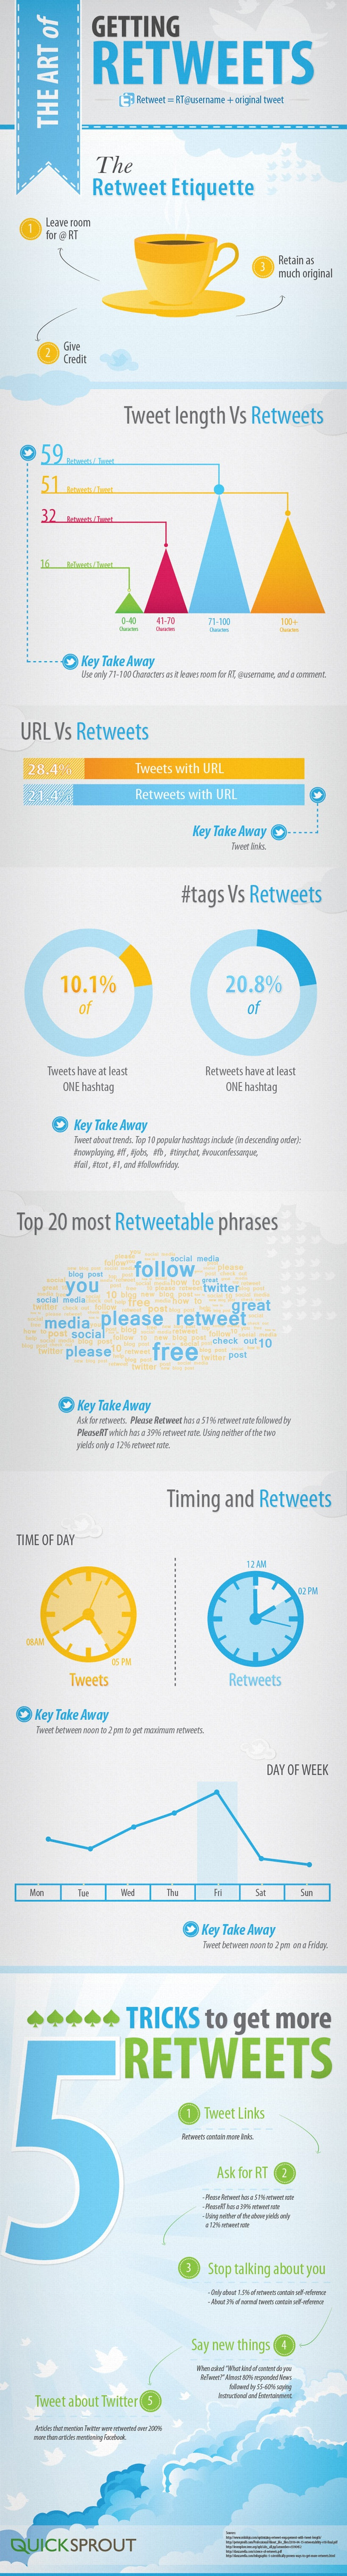 the art of getting retweets 51c0ee6acd2411 How to Get more Retweets [Infographic]